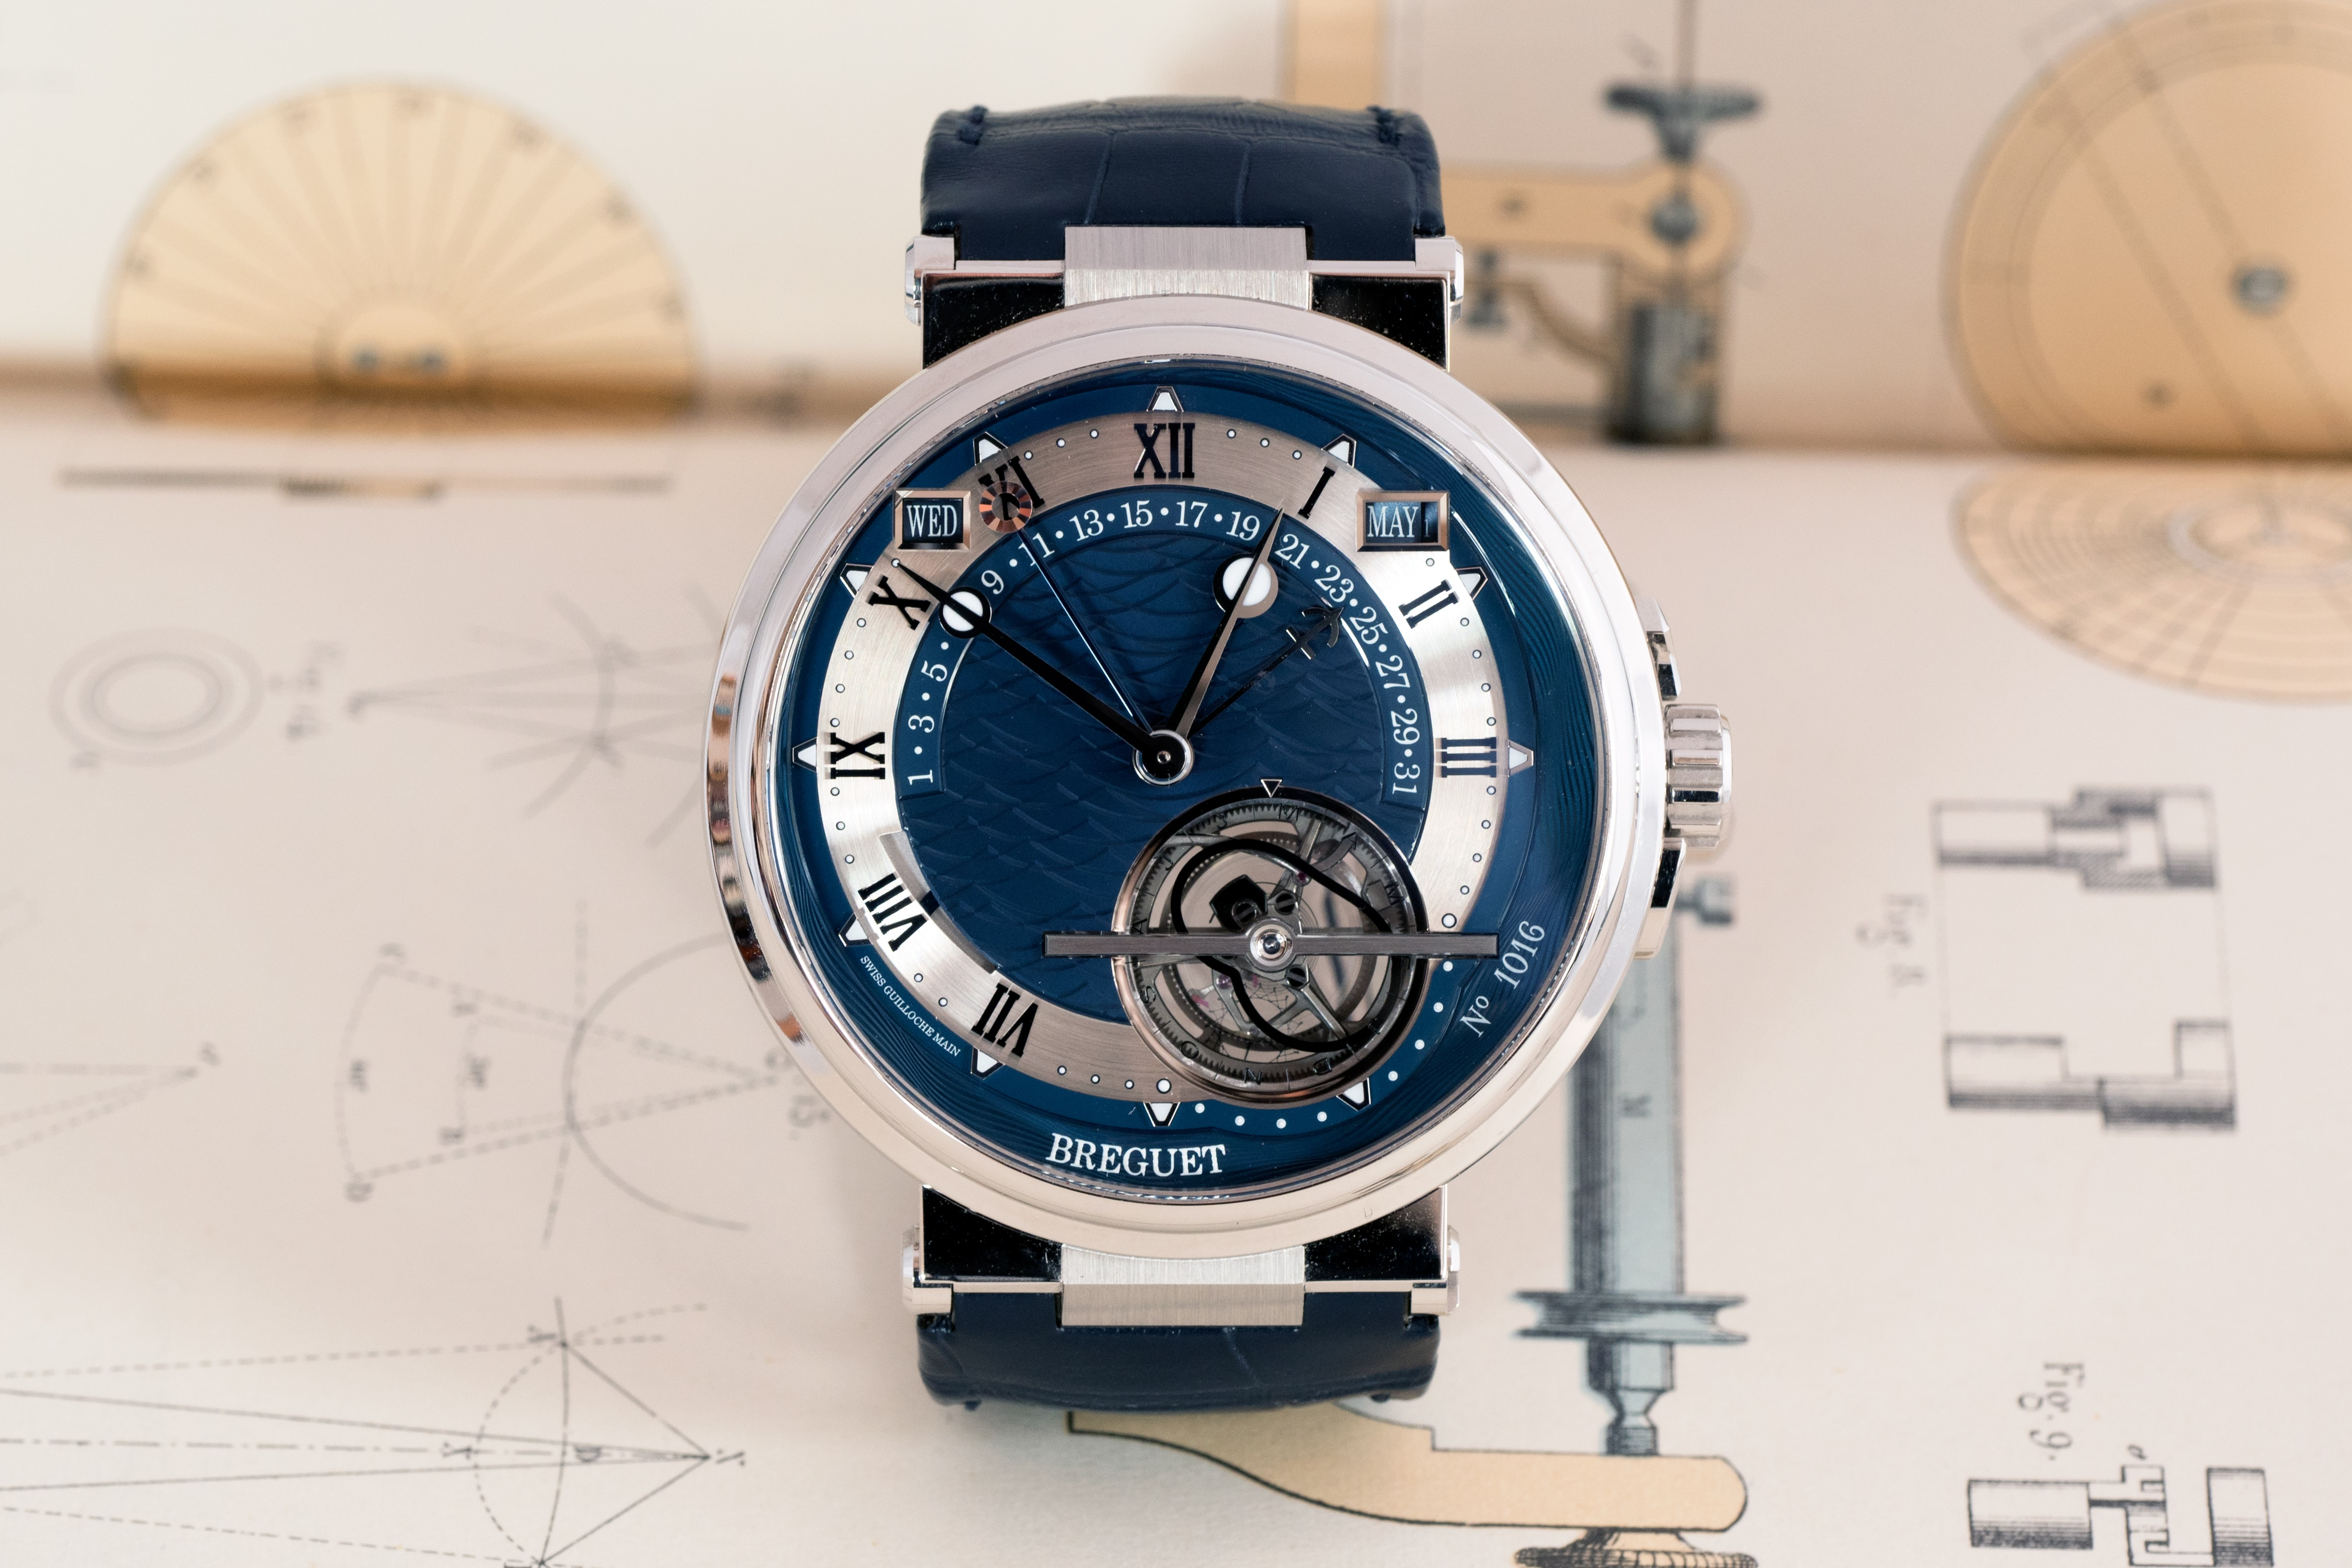 breguet marine 5887 Introducing: The Breguet Marine quation Marchante 5887 Introducing: The Breguet Marine quation Marchante 5887 P5241030